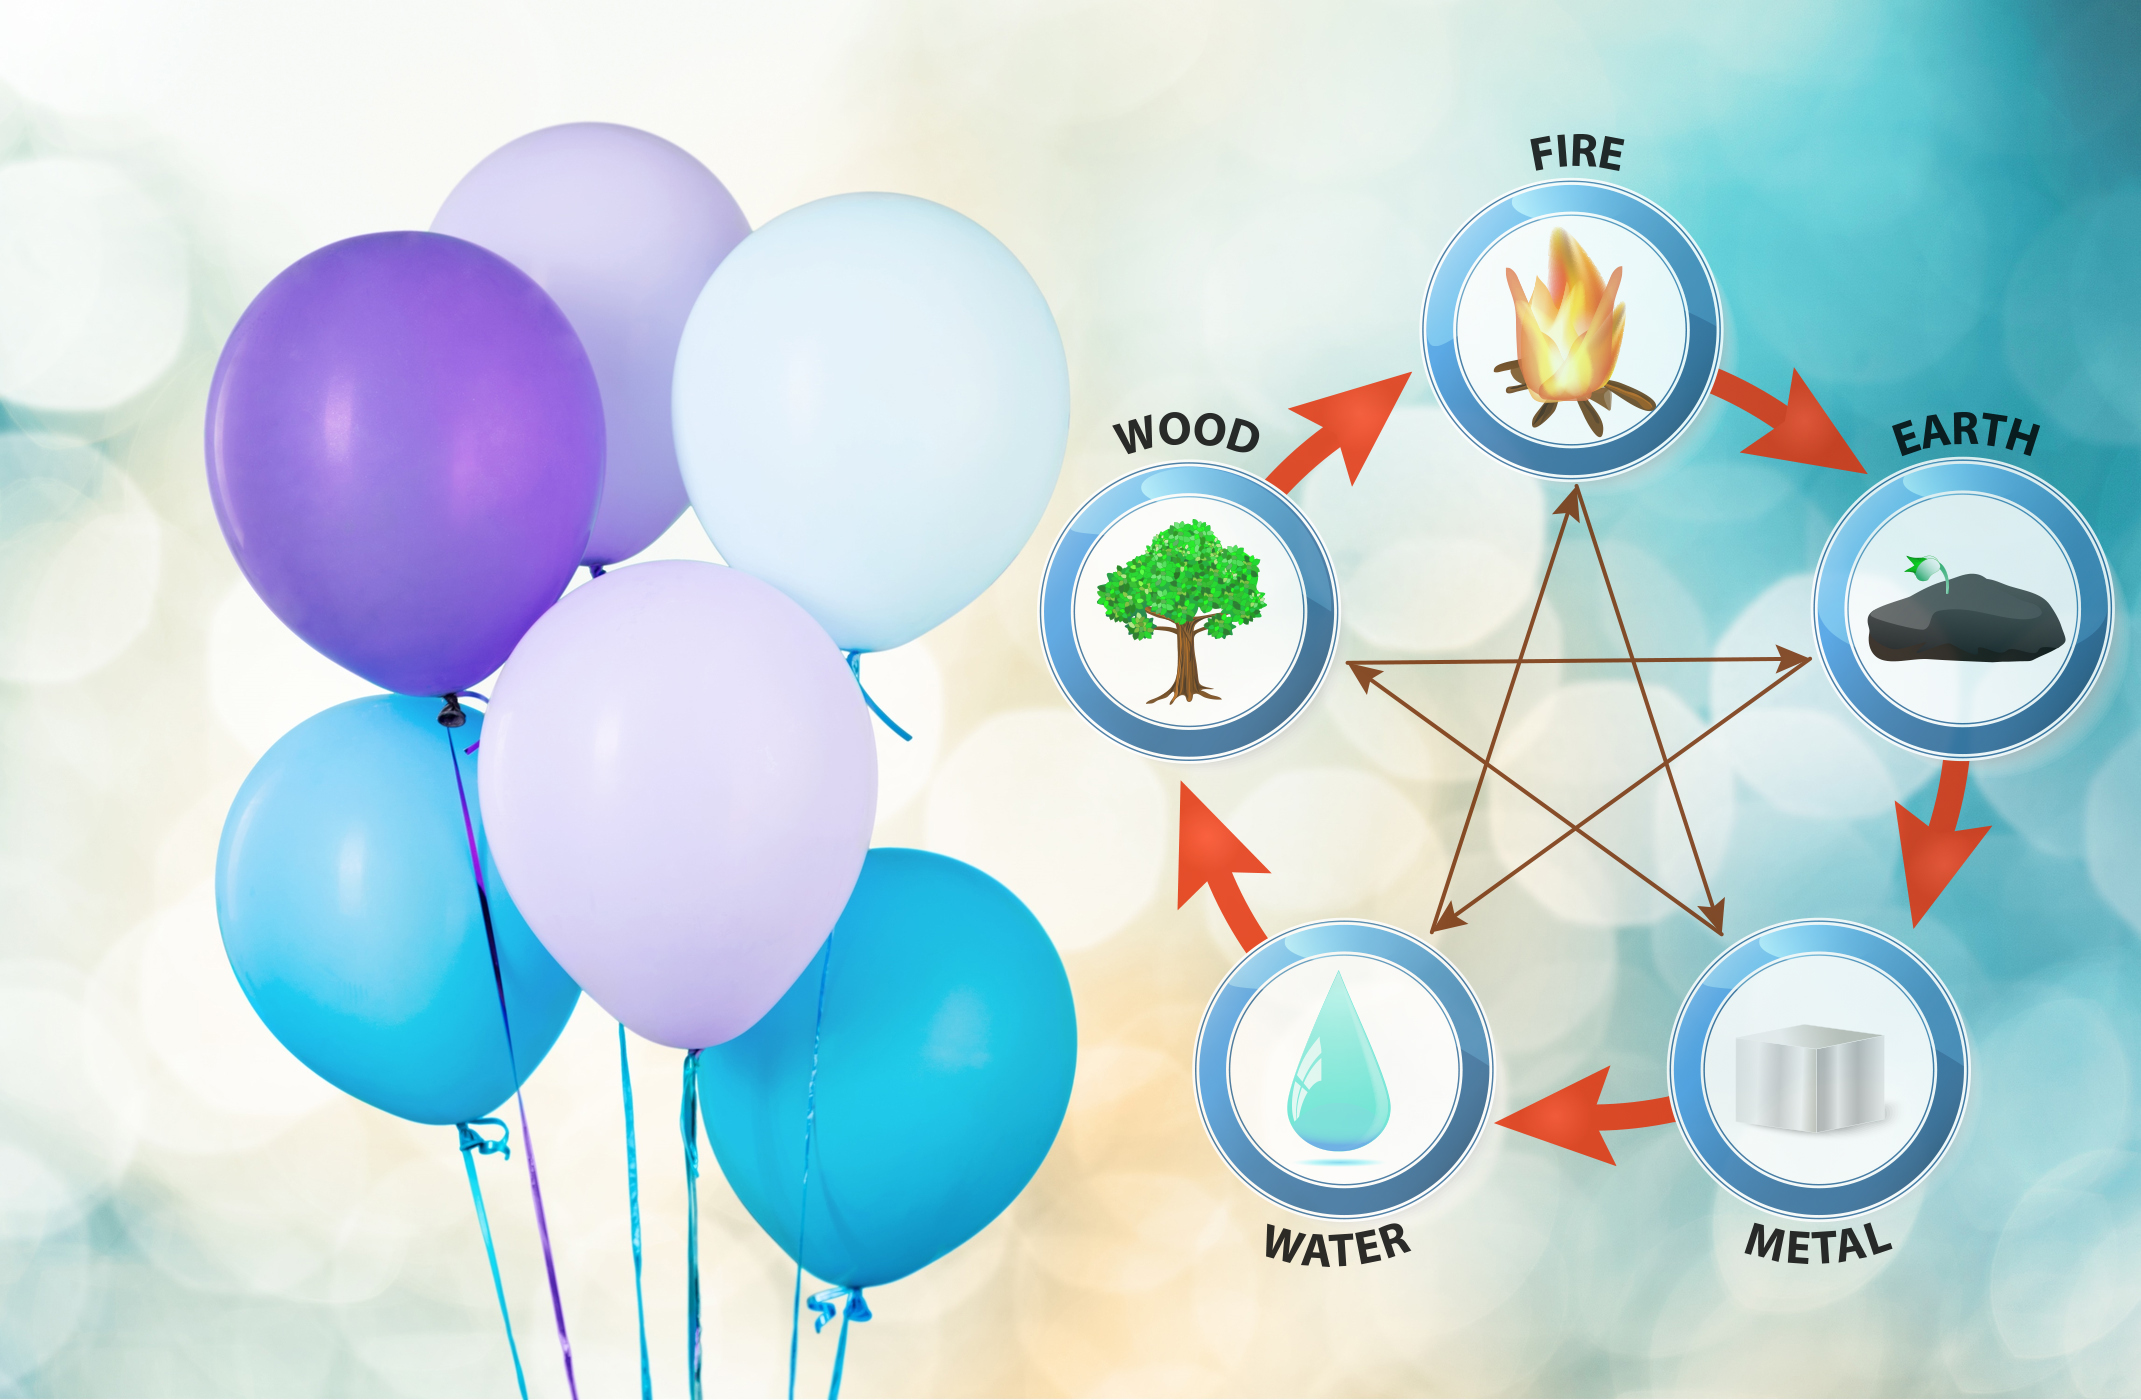 Feng Shui Elements To Use Based On Your Birthday